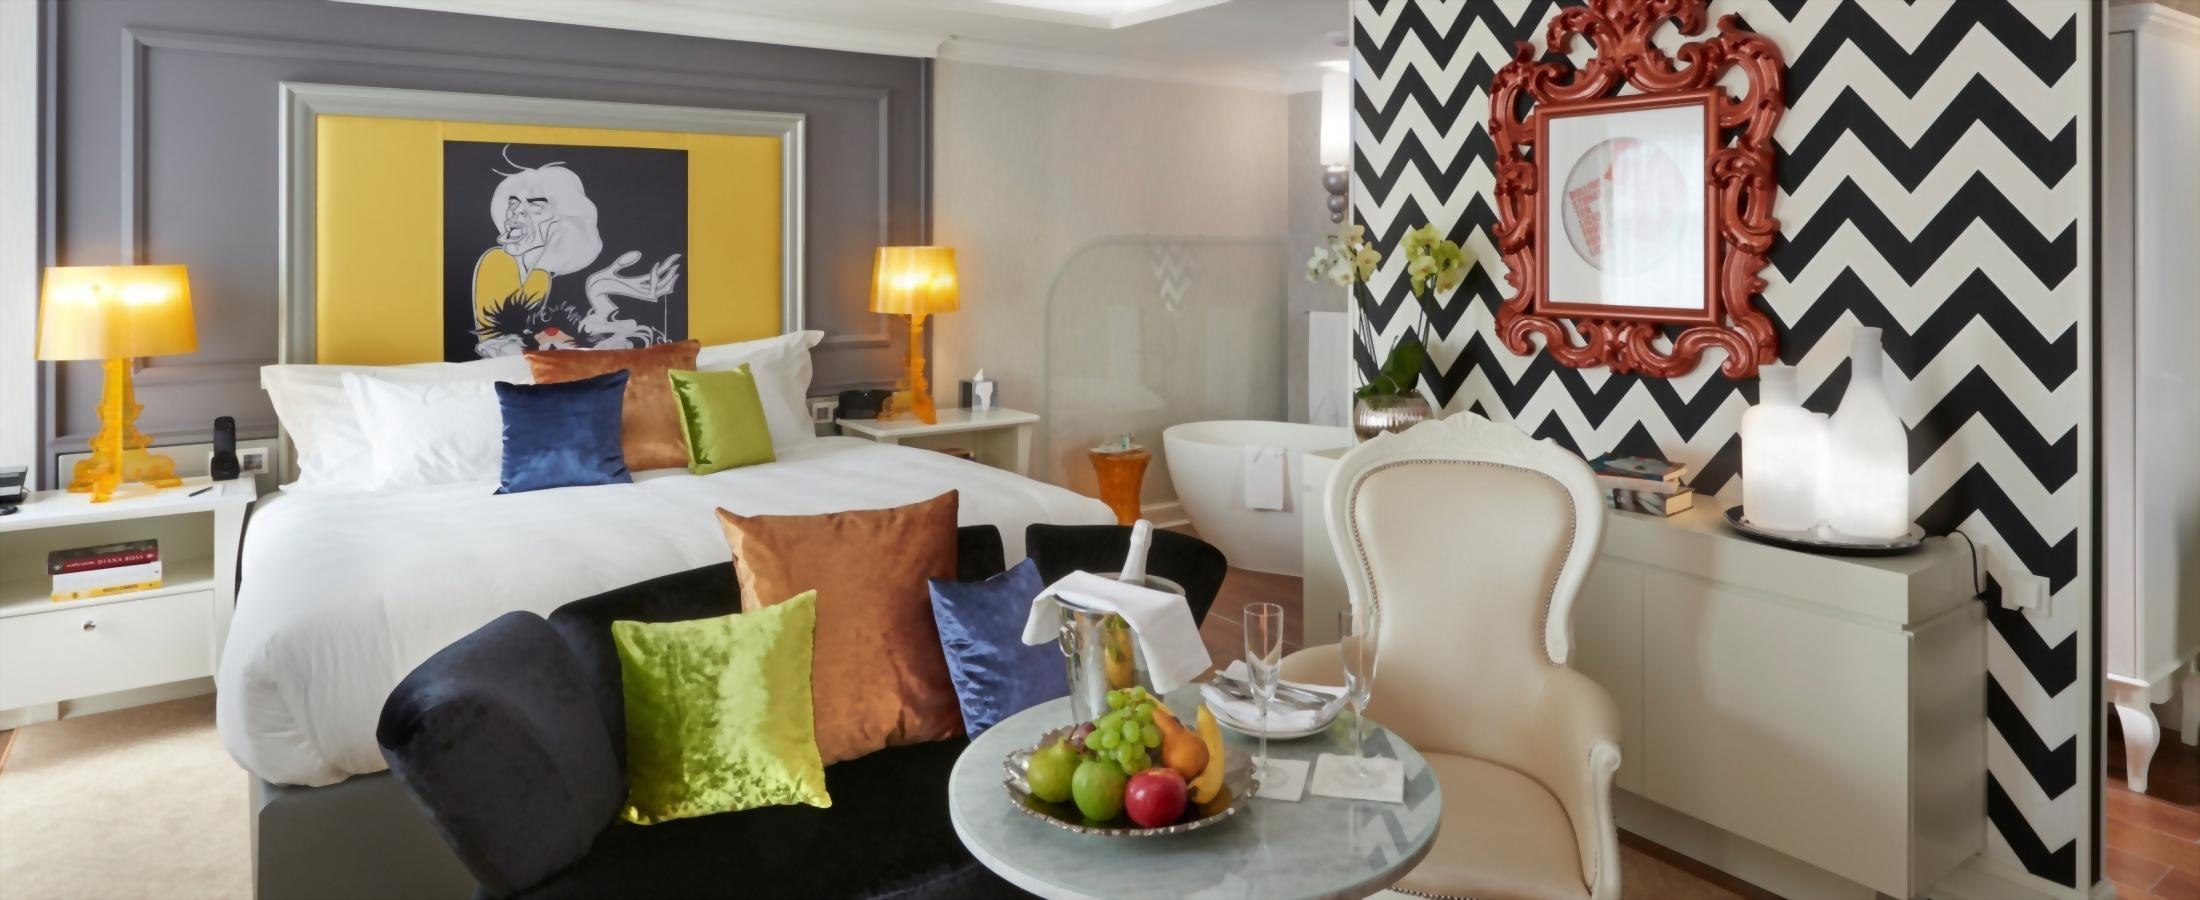 The Aria Hotel Budapest offers a number of wonderful stay enhancements that can be added to any reservation.